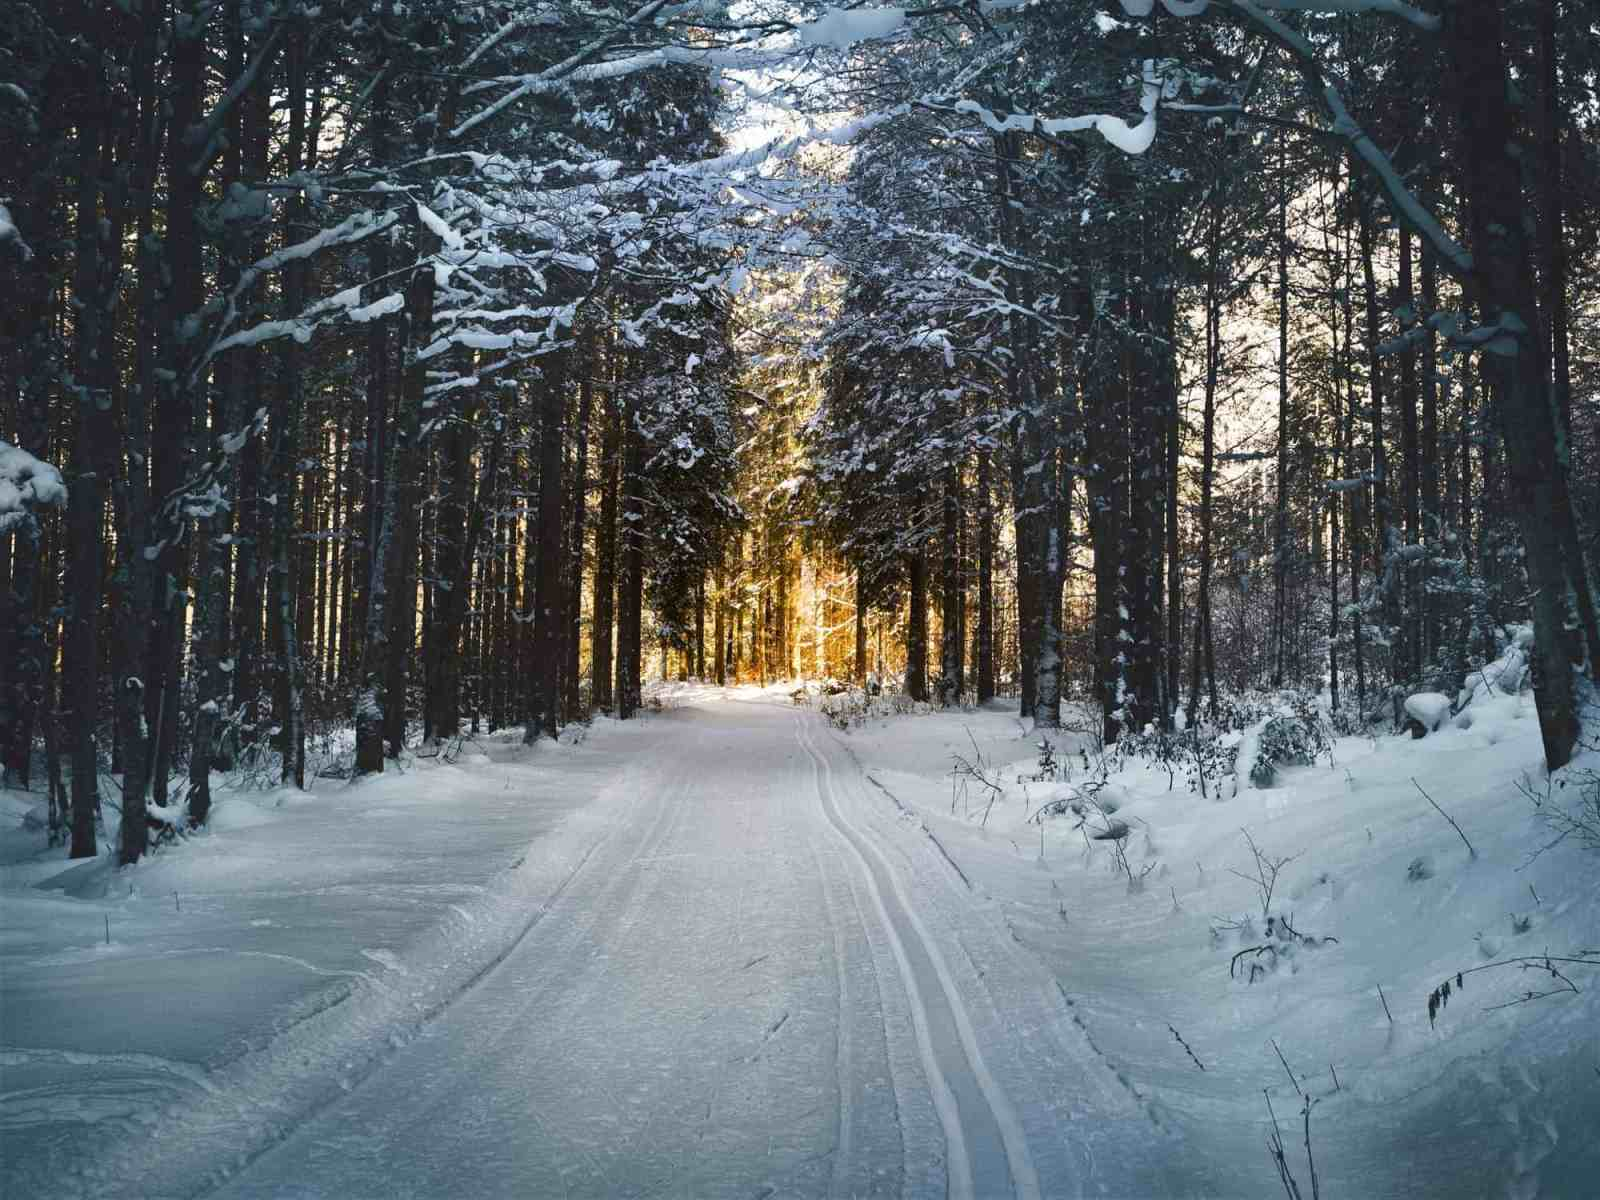 These Instagram winter spots are going to make all of your insta pics looks like a winter wonderland! Here are some of the best!